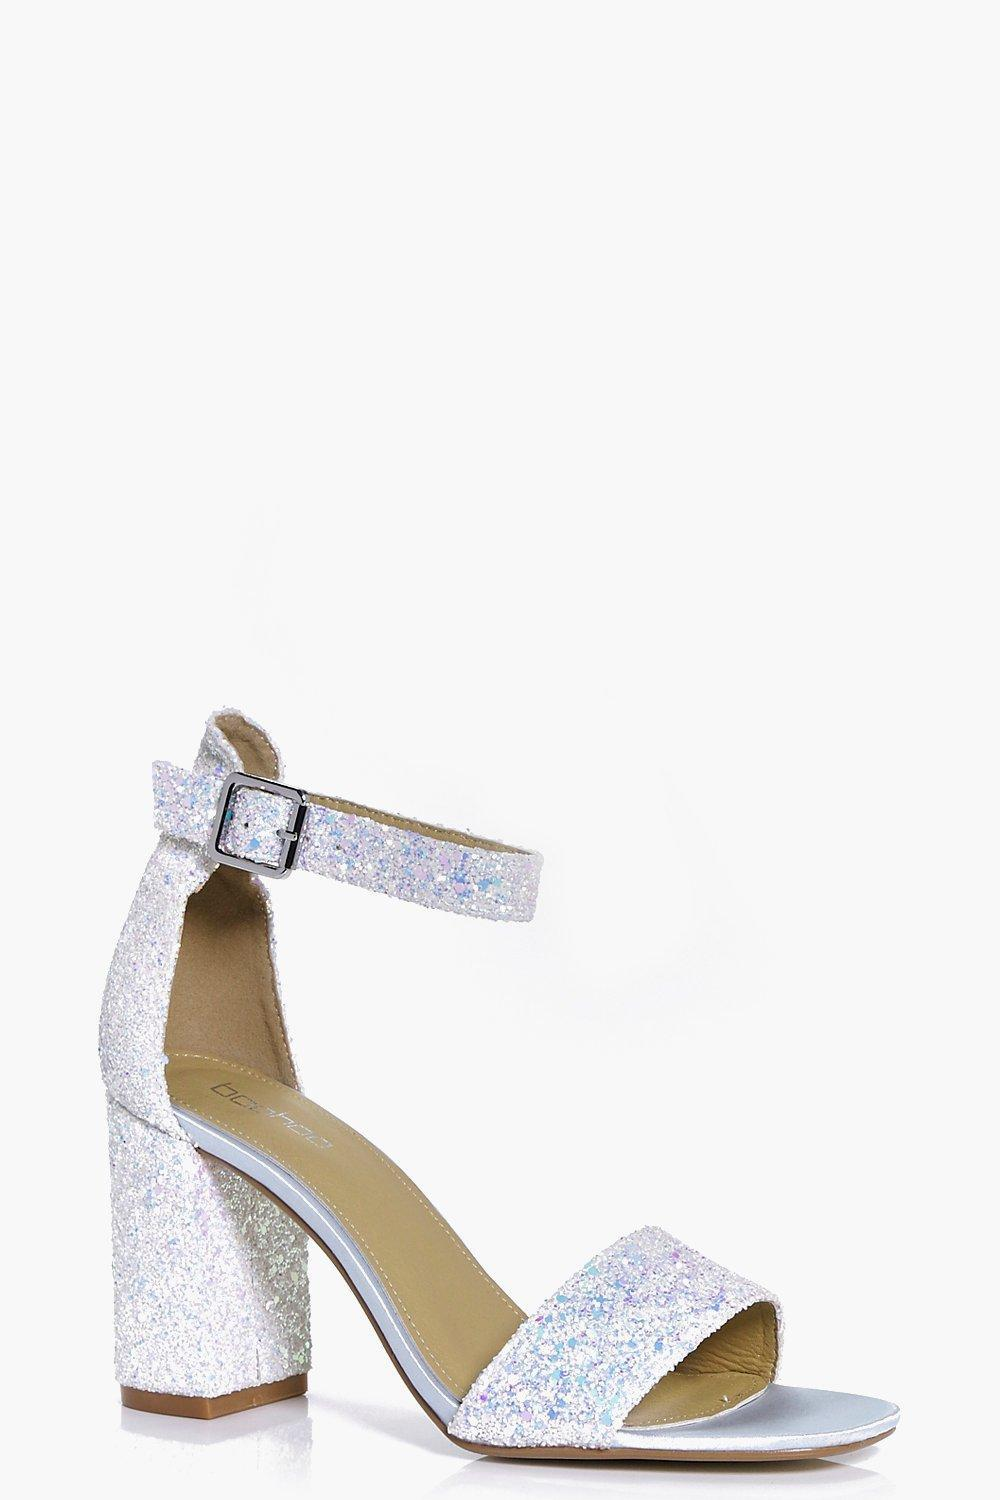 f3f0d98ae286 Lyst - Boohoo Lillie Bridal Glitter Block Heel Two Part in Blue